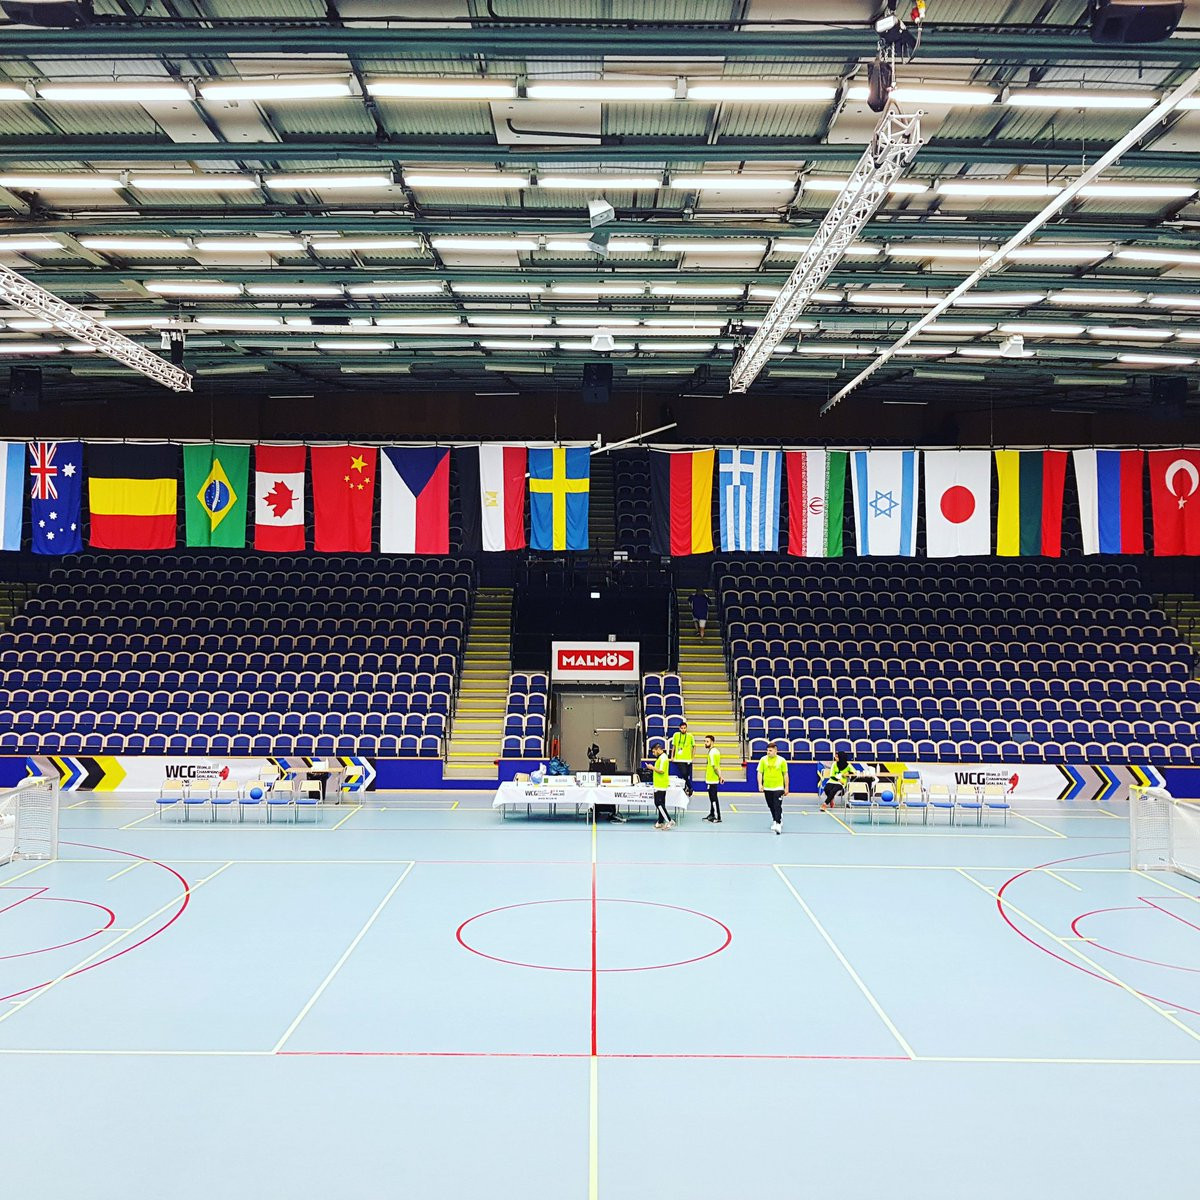 Defending champions Brazil thrash United States in first match of 2018 IBSA Goalball World Championships